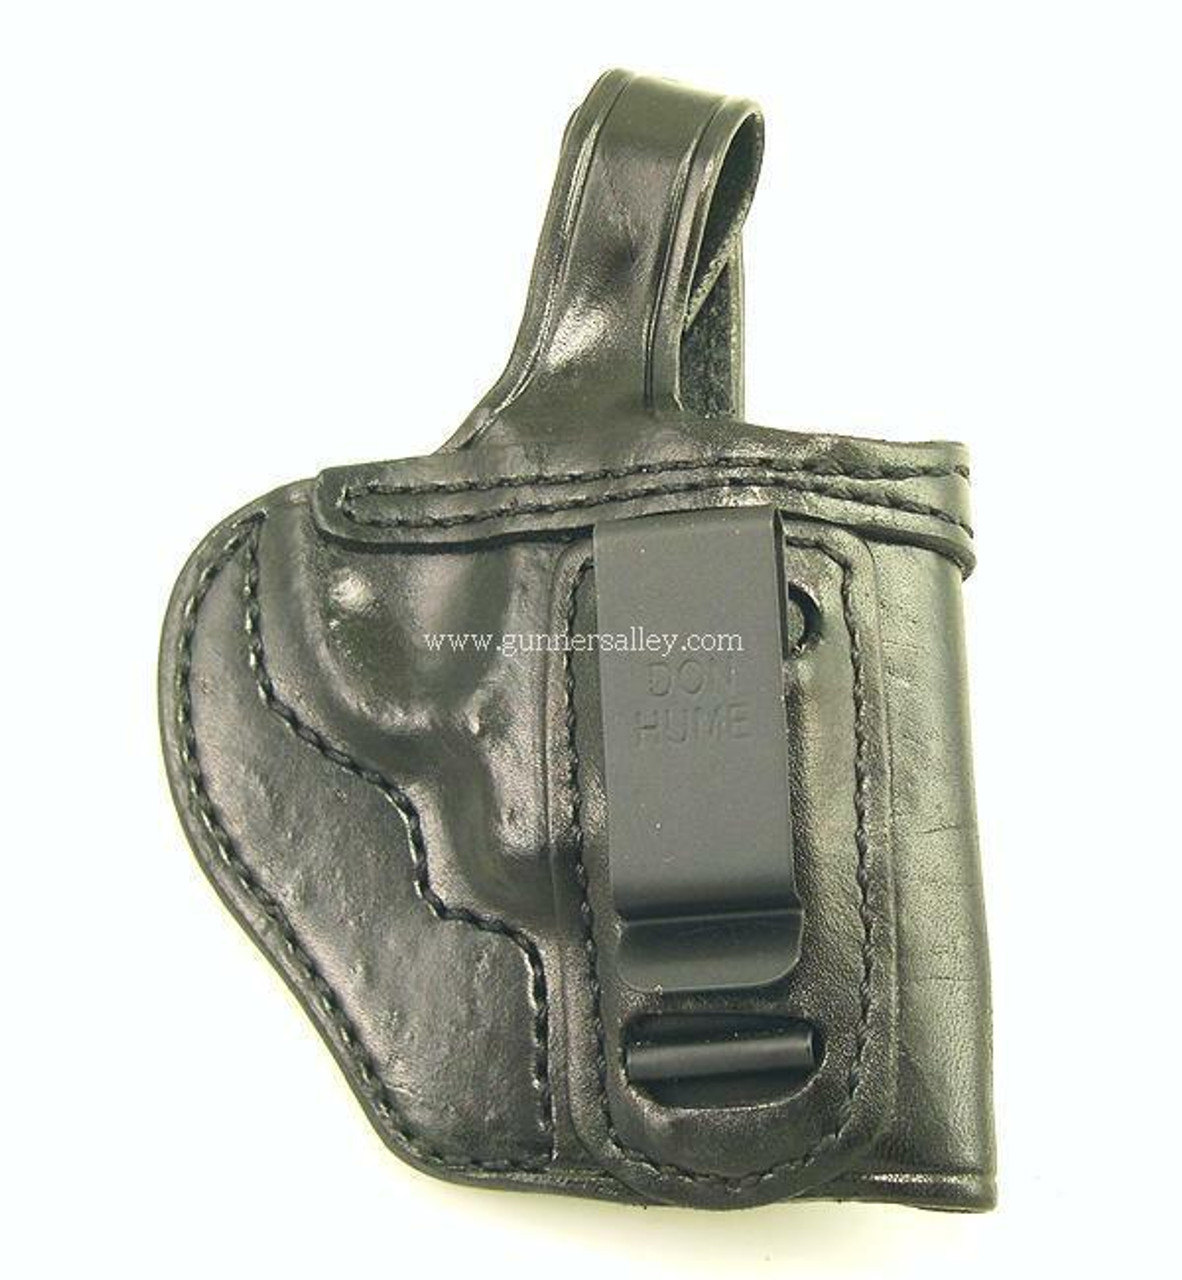 Right Hand - Black - Don Hume H715MWCS for a Ruger LCR